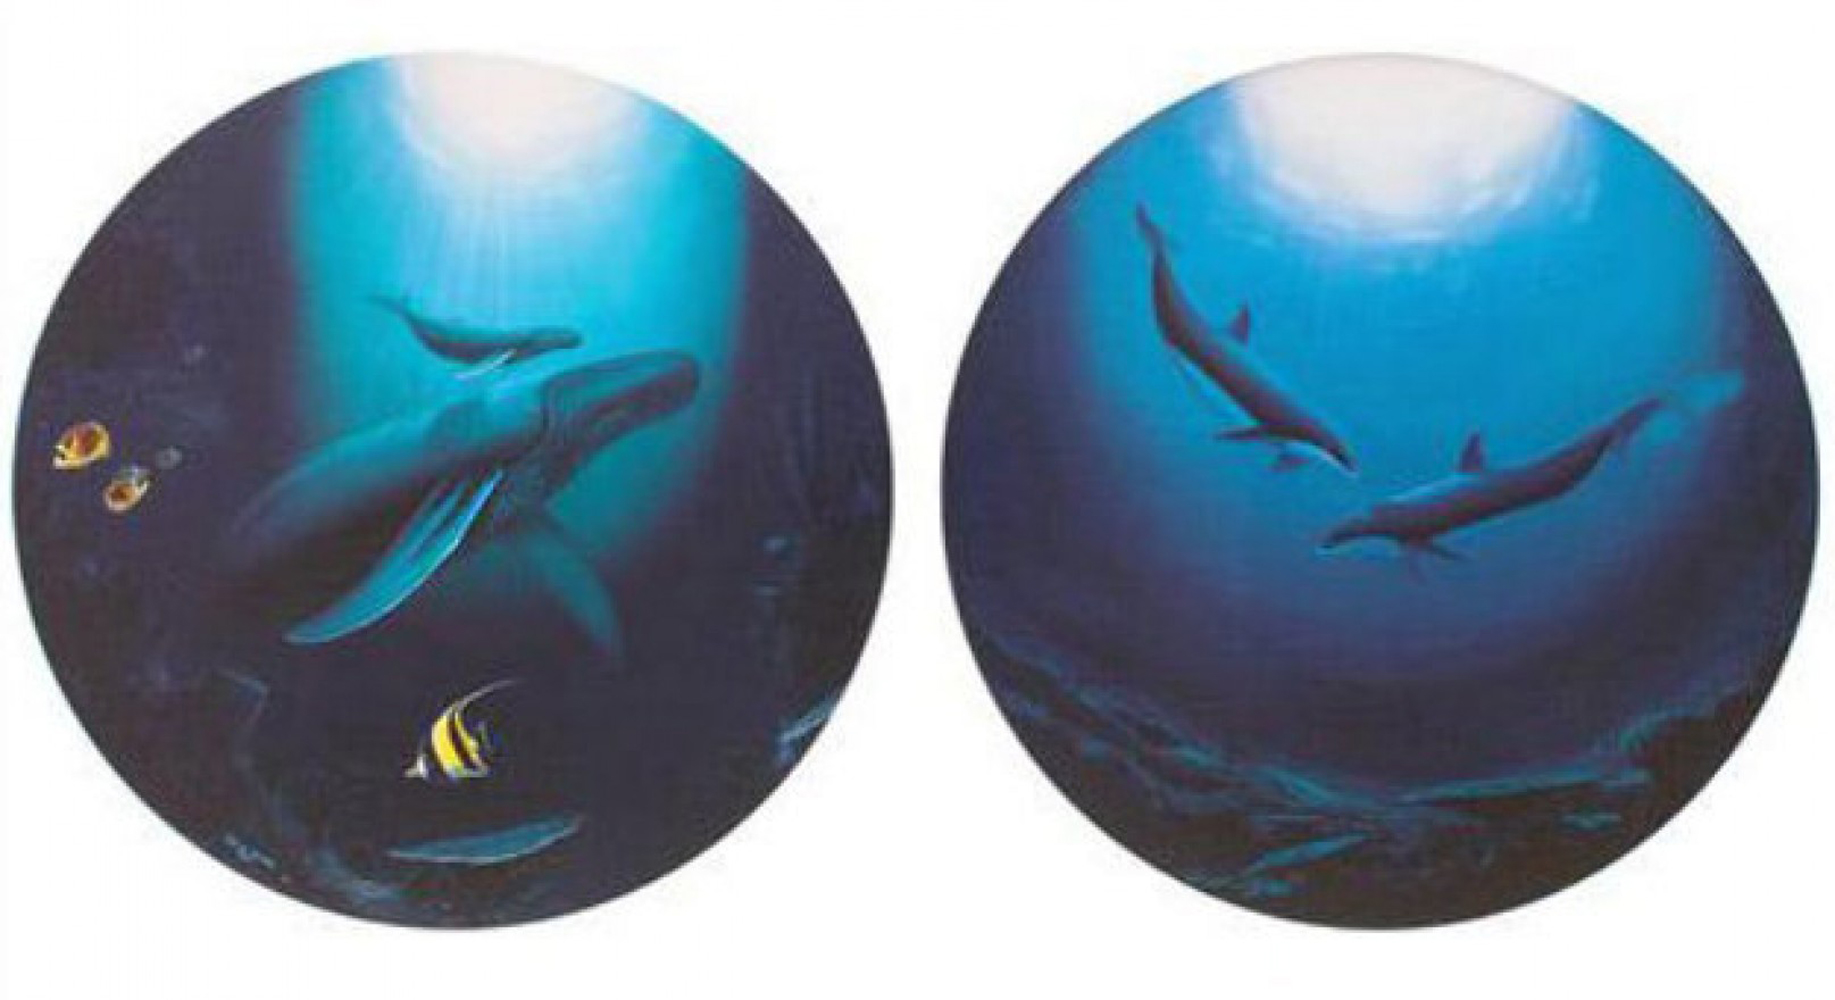 Inocent Age / Dolphin Serenity 1993